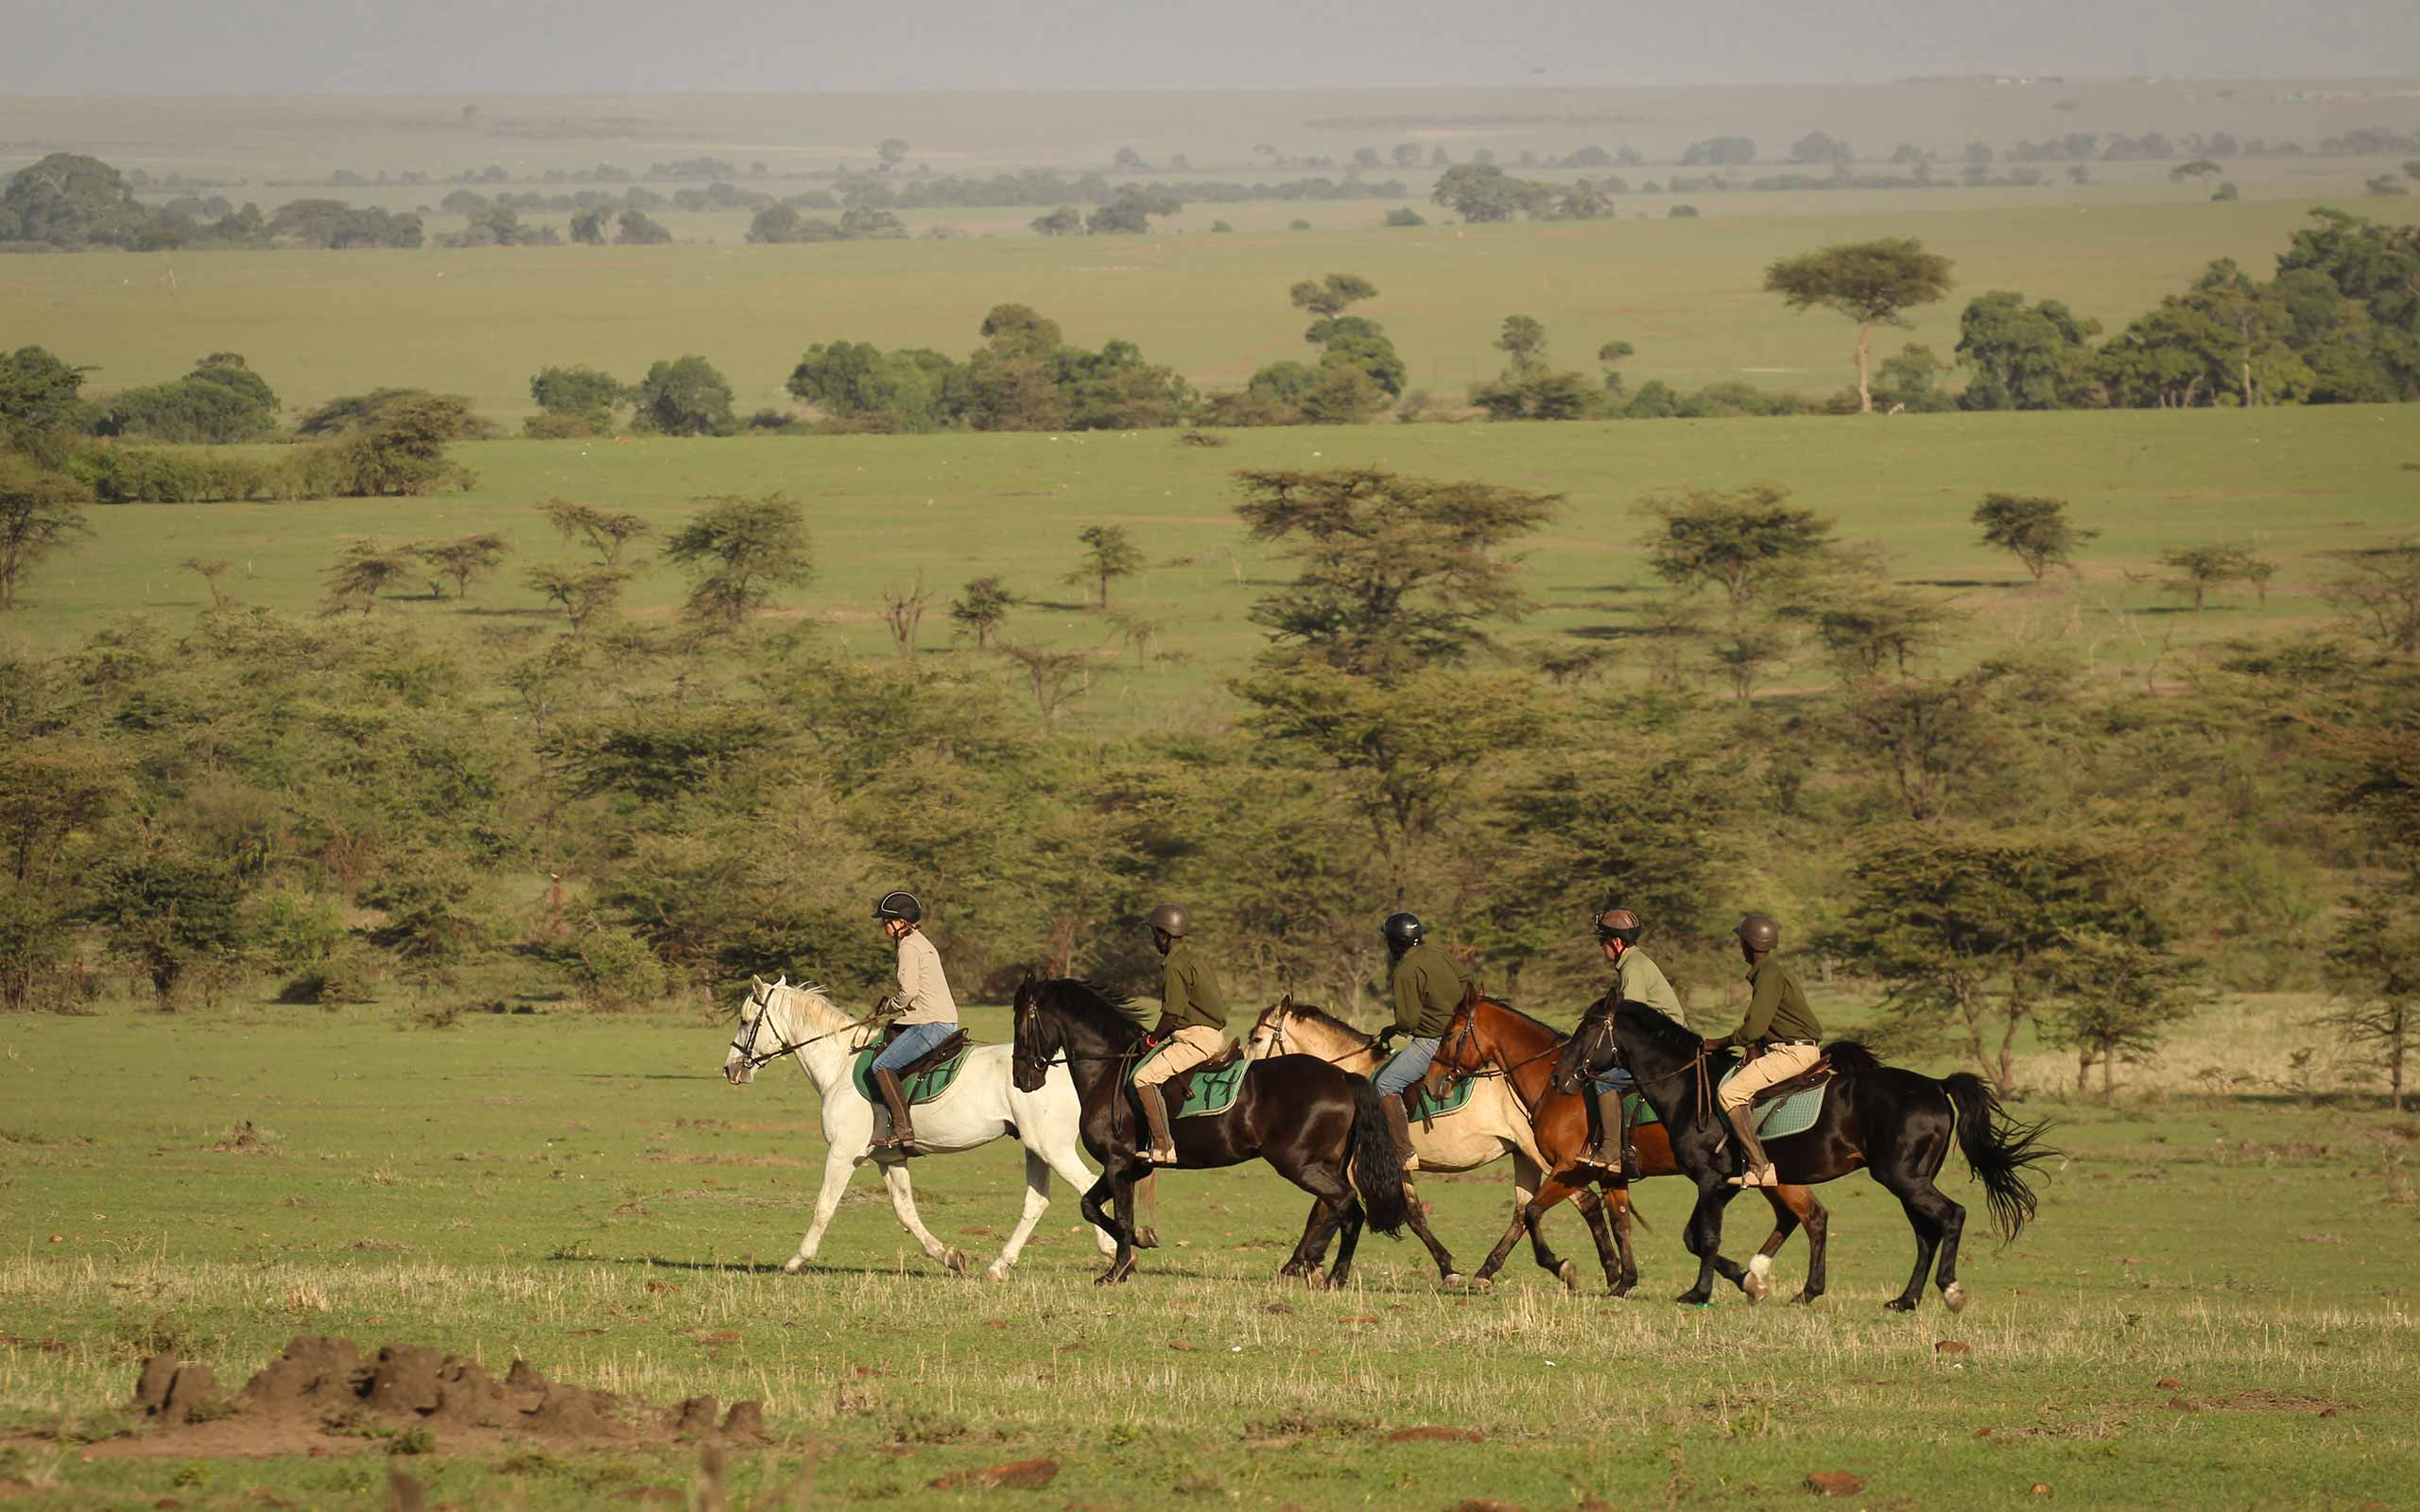 enkosi-africa-safari-kenya-masai-mara-great-plains-conservation-horse-riding-ride-kenya